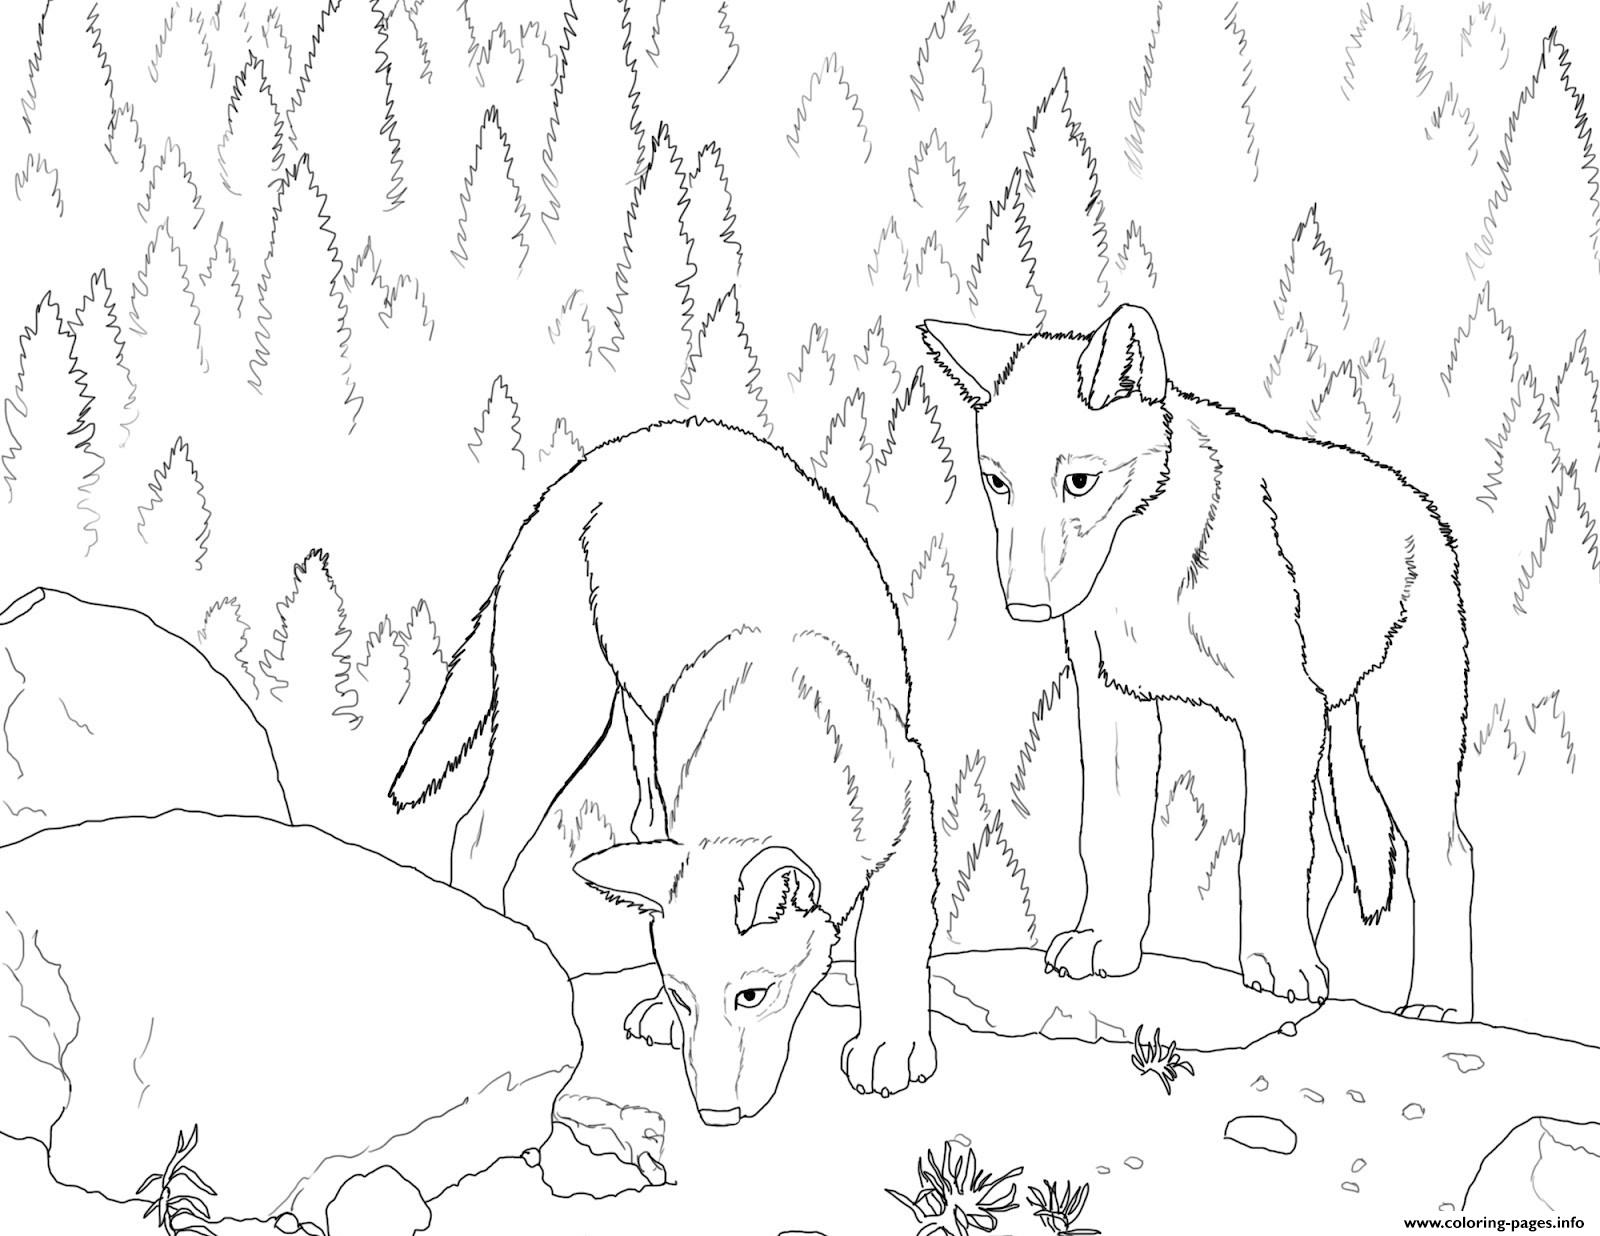 Wolf mandala coloring pages - Wolf S Pup Colouring Print Wolf S Pup Coloring Pages